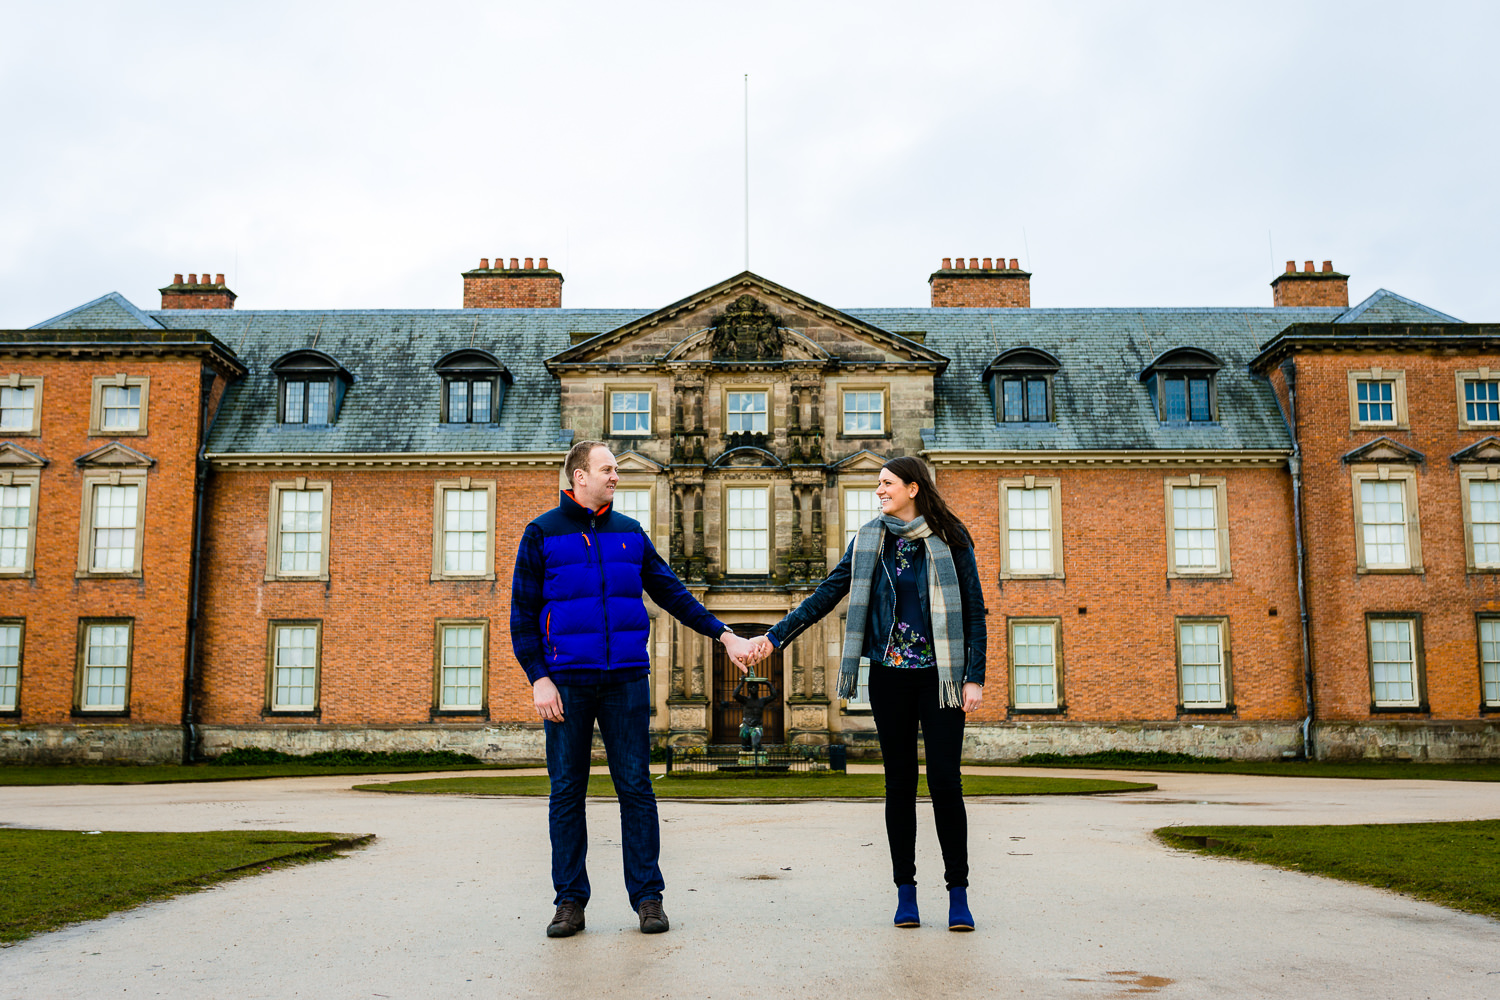 An engaged couple holding hands in front of Dunham Massey manor house.